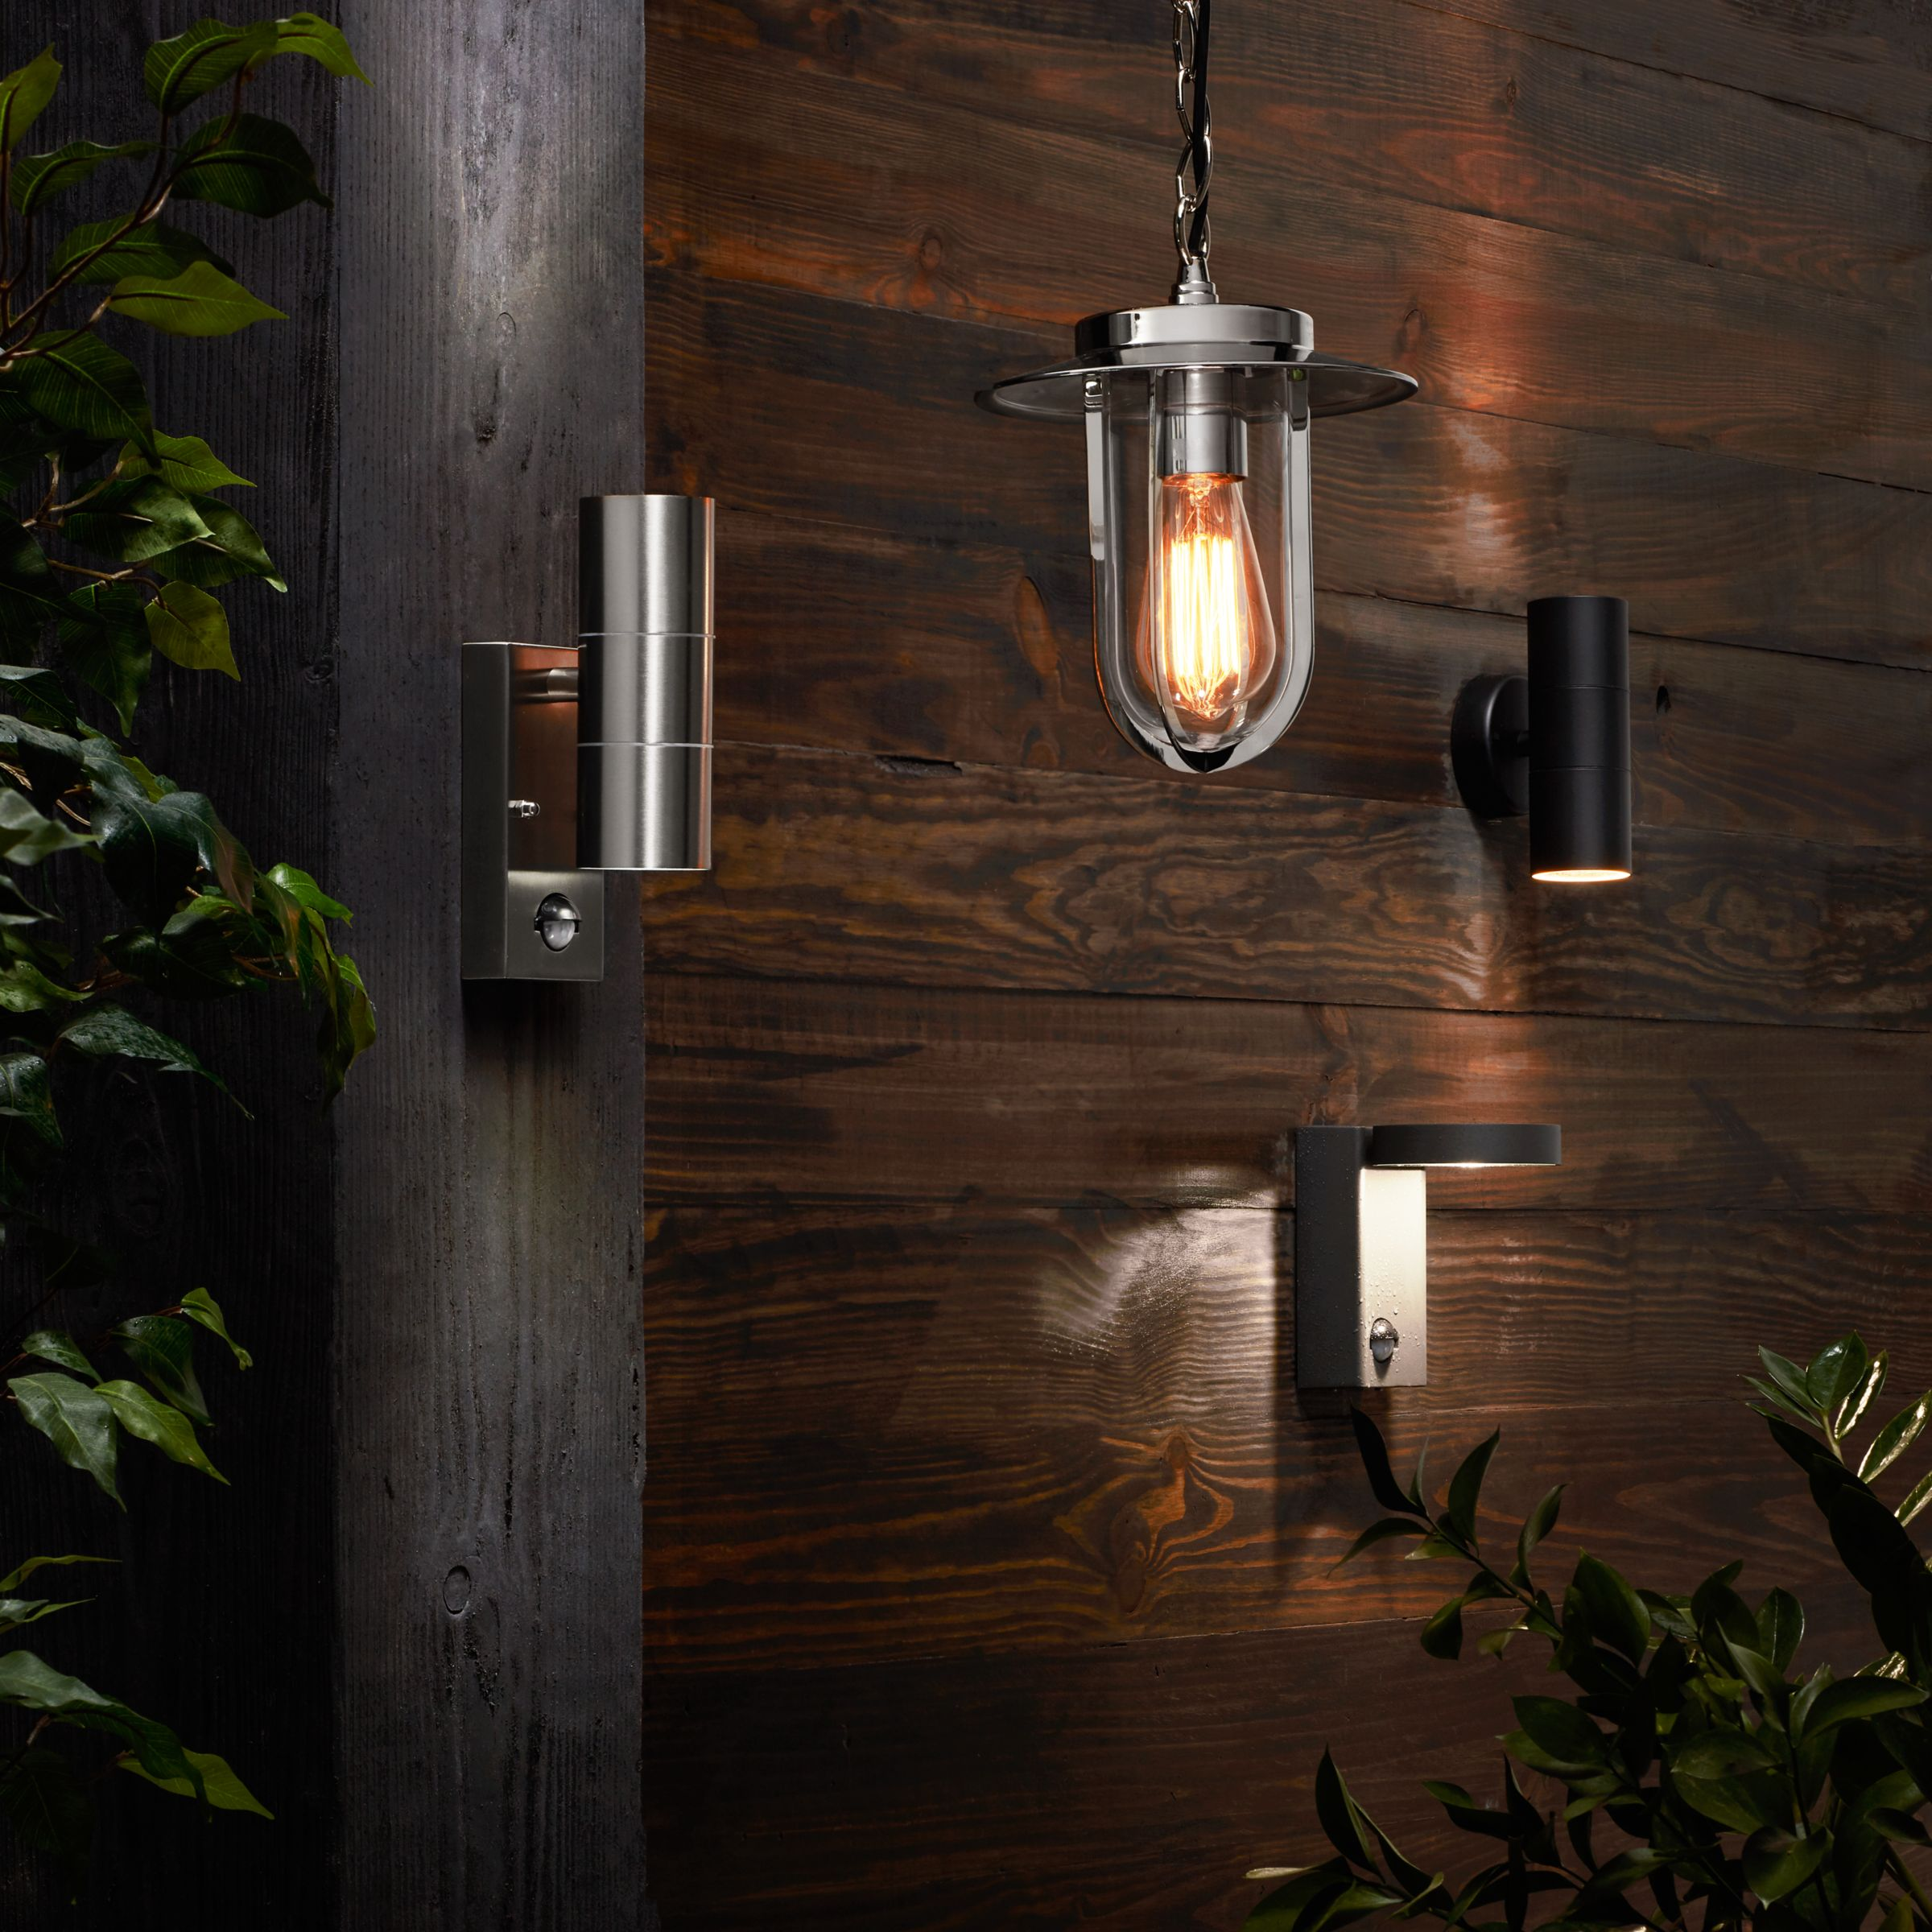 Luxembourg Wall Light With Pir : Buy Nordlux Luxembourg Outdoor Wall Light with PIR Sensor, Galvanised Steel John Lewis